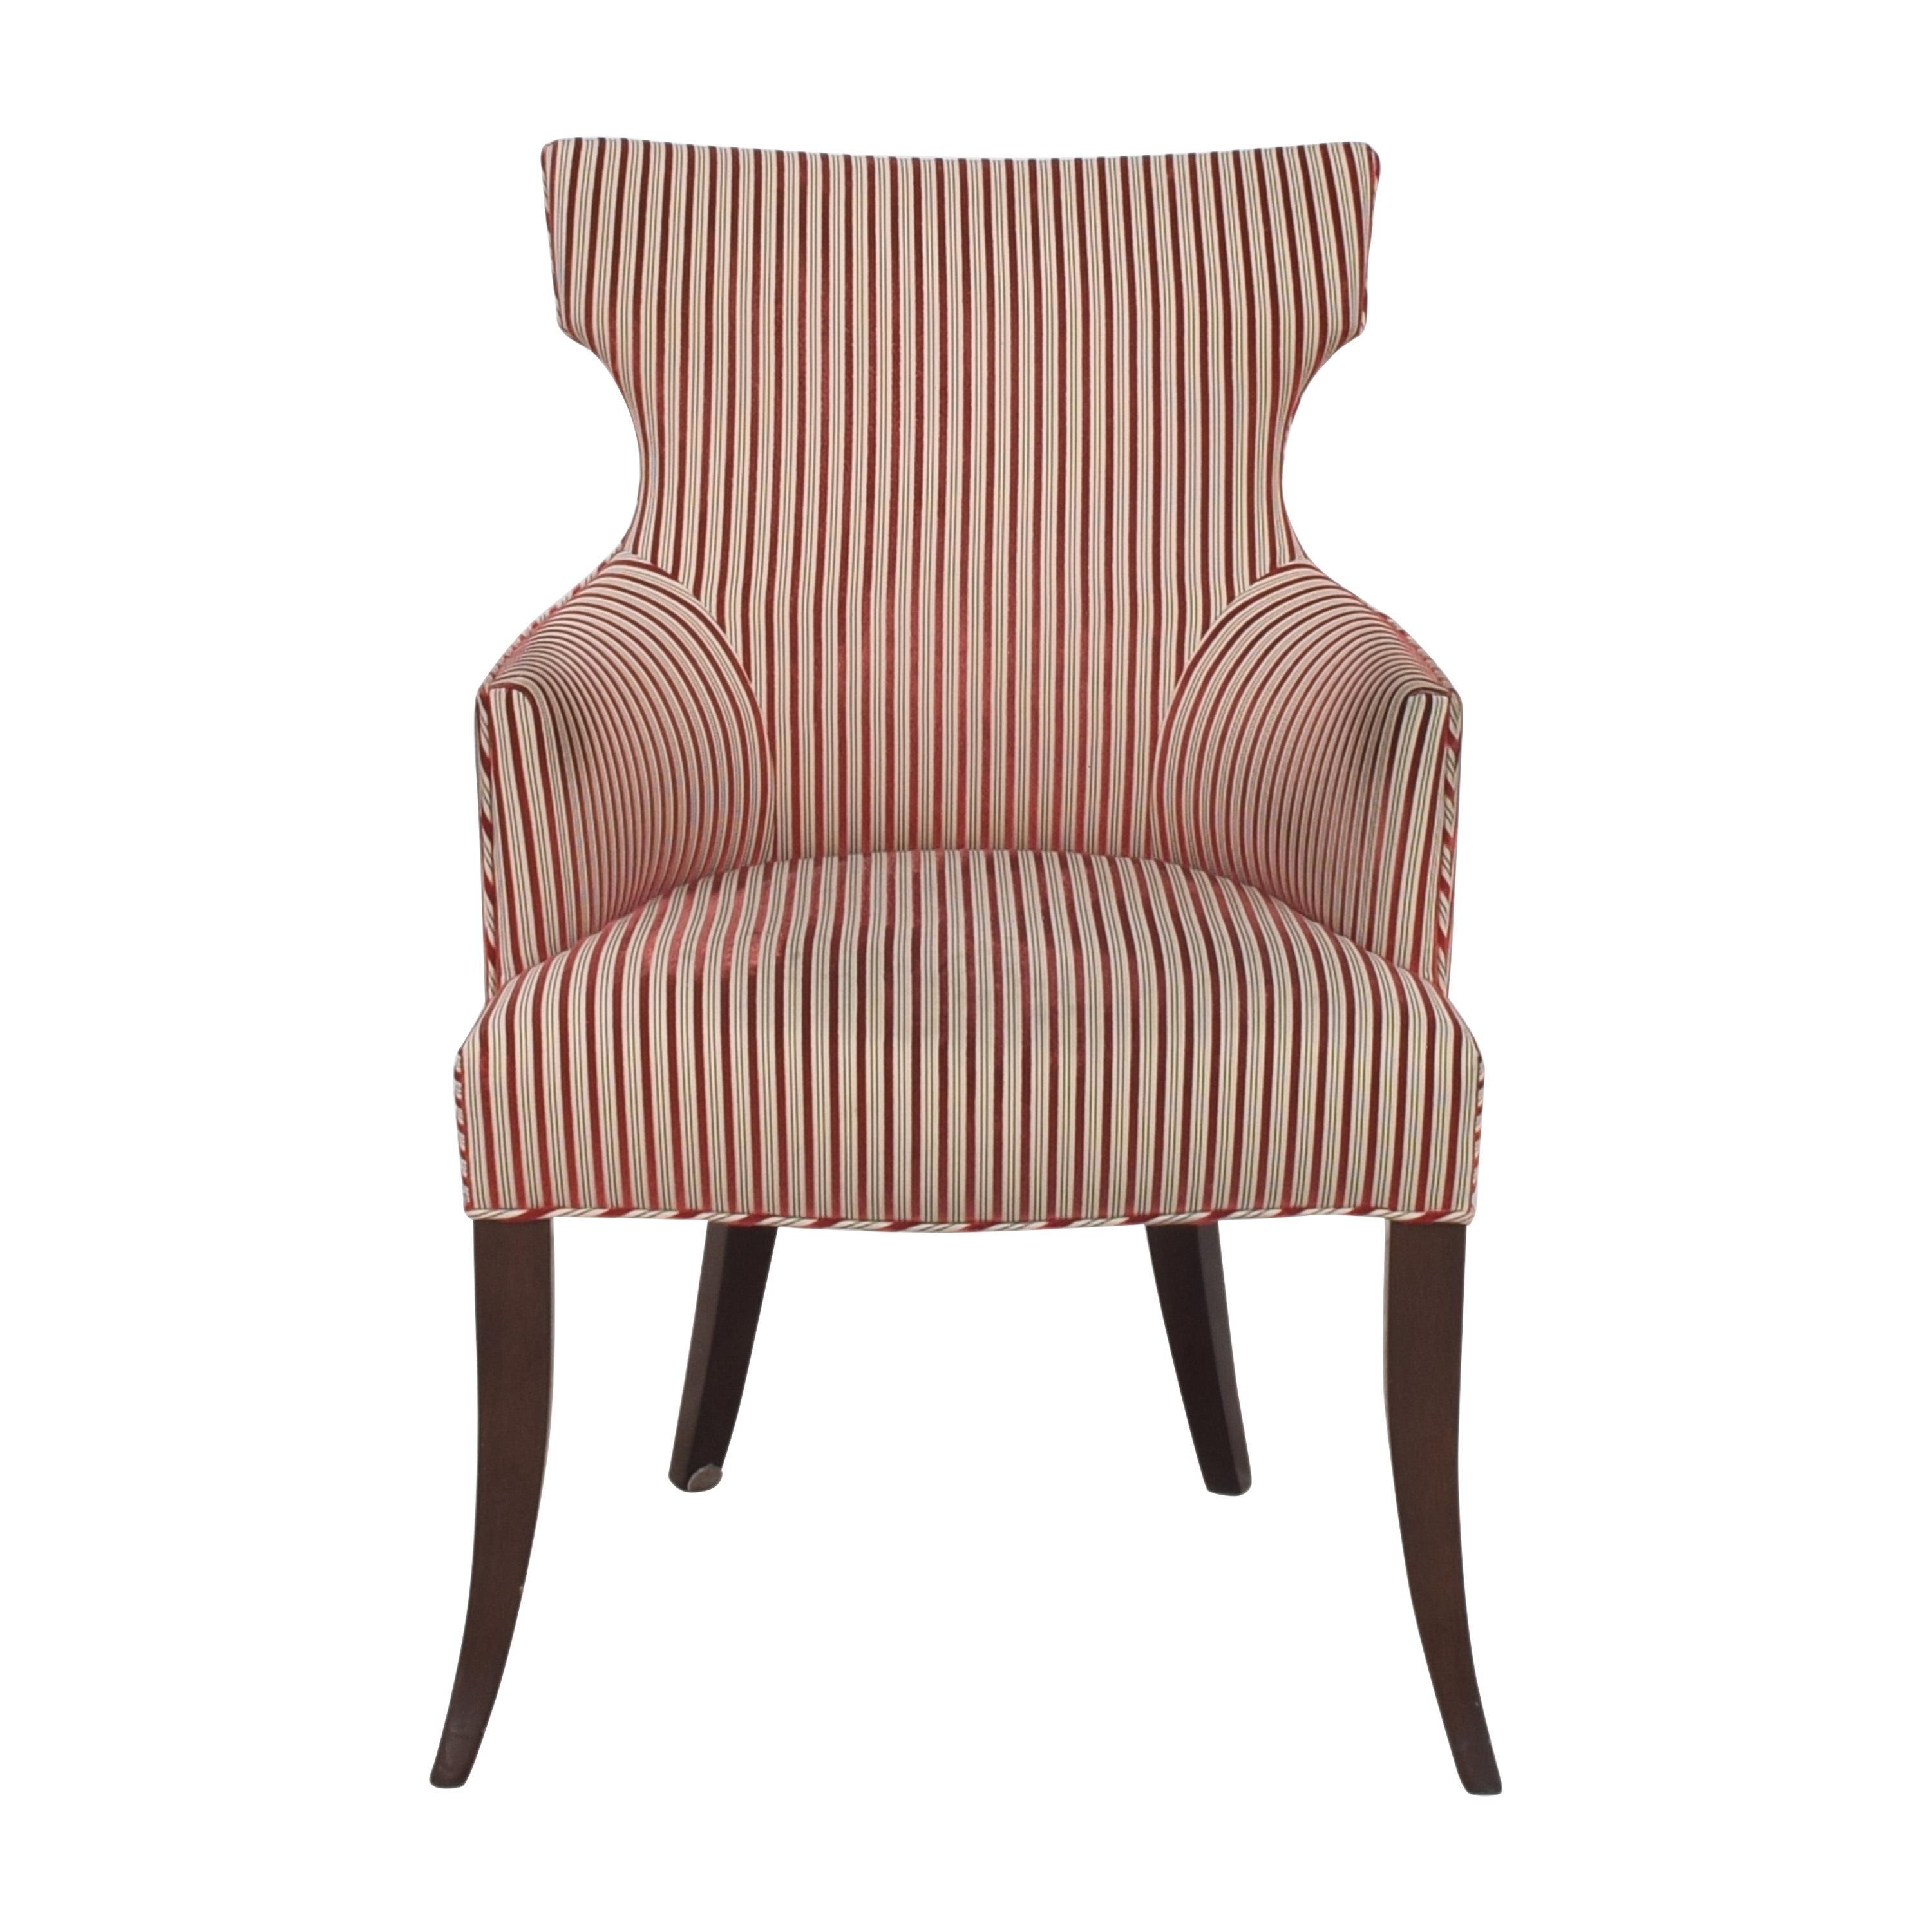 Upholstered Accent Chair dimensions